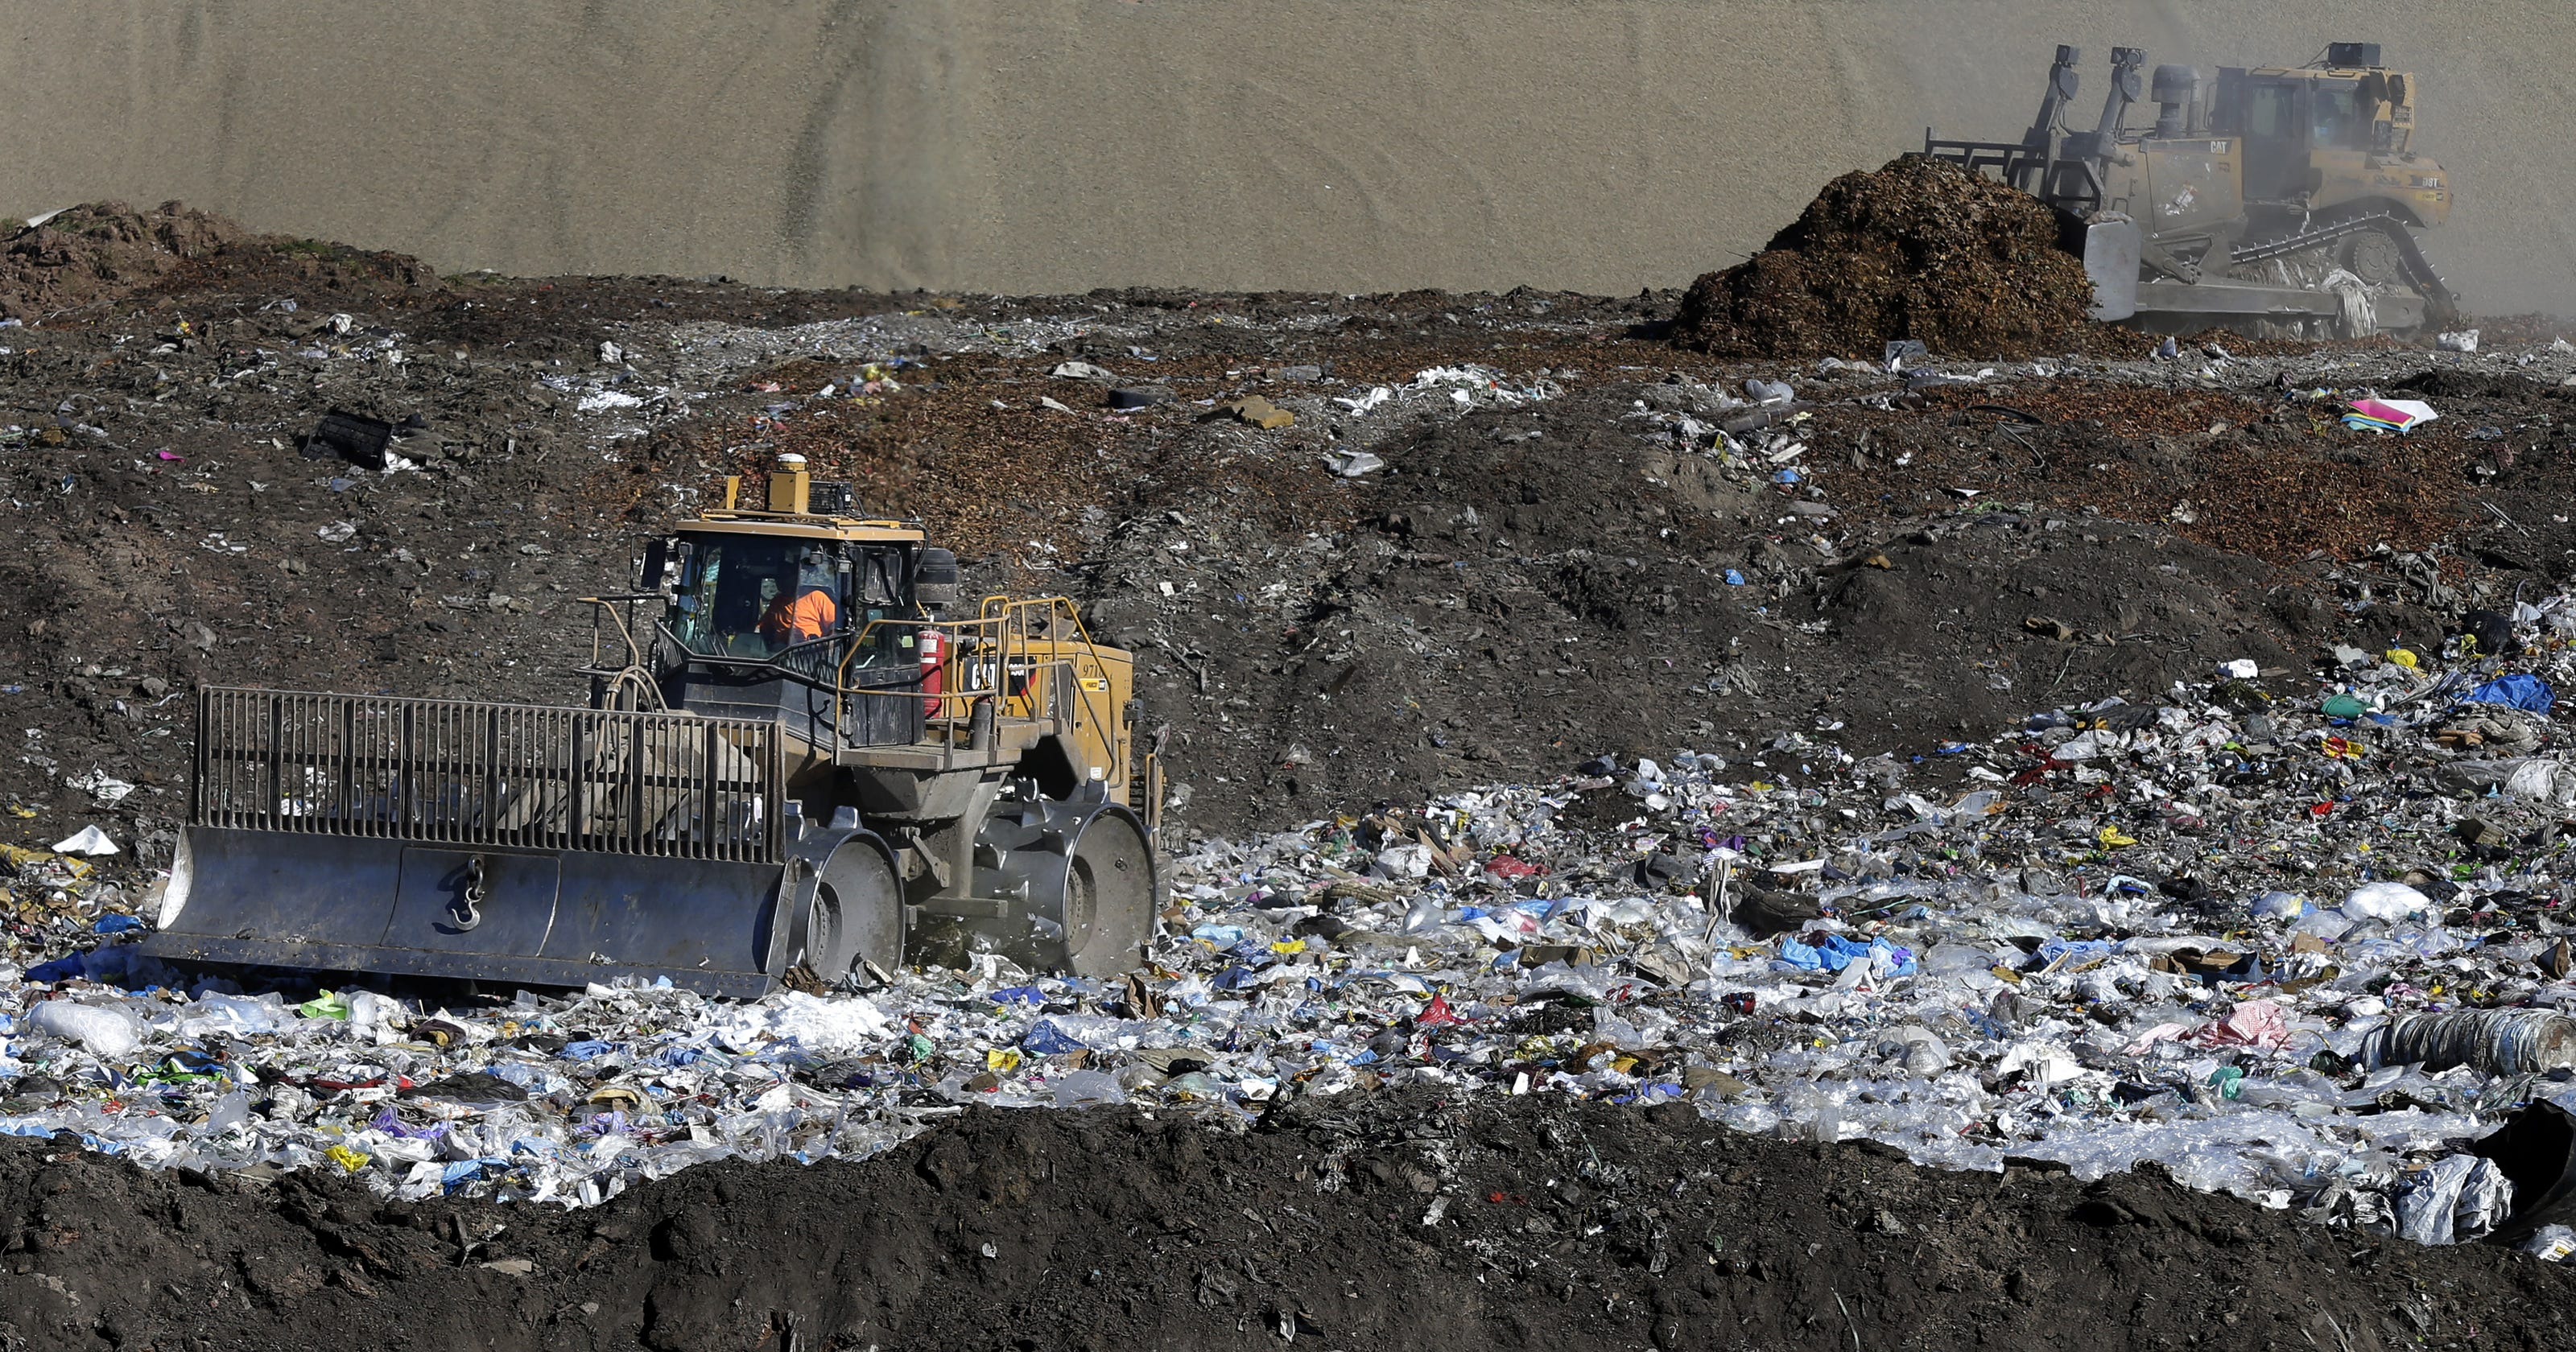 outagamie county landfill will rise another 50 to 70 feet